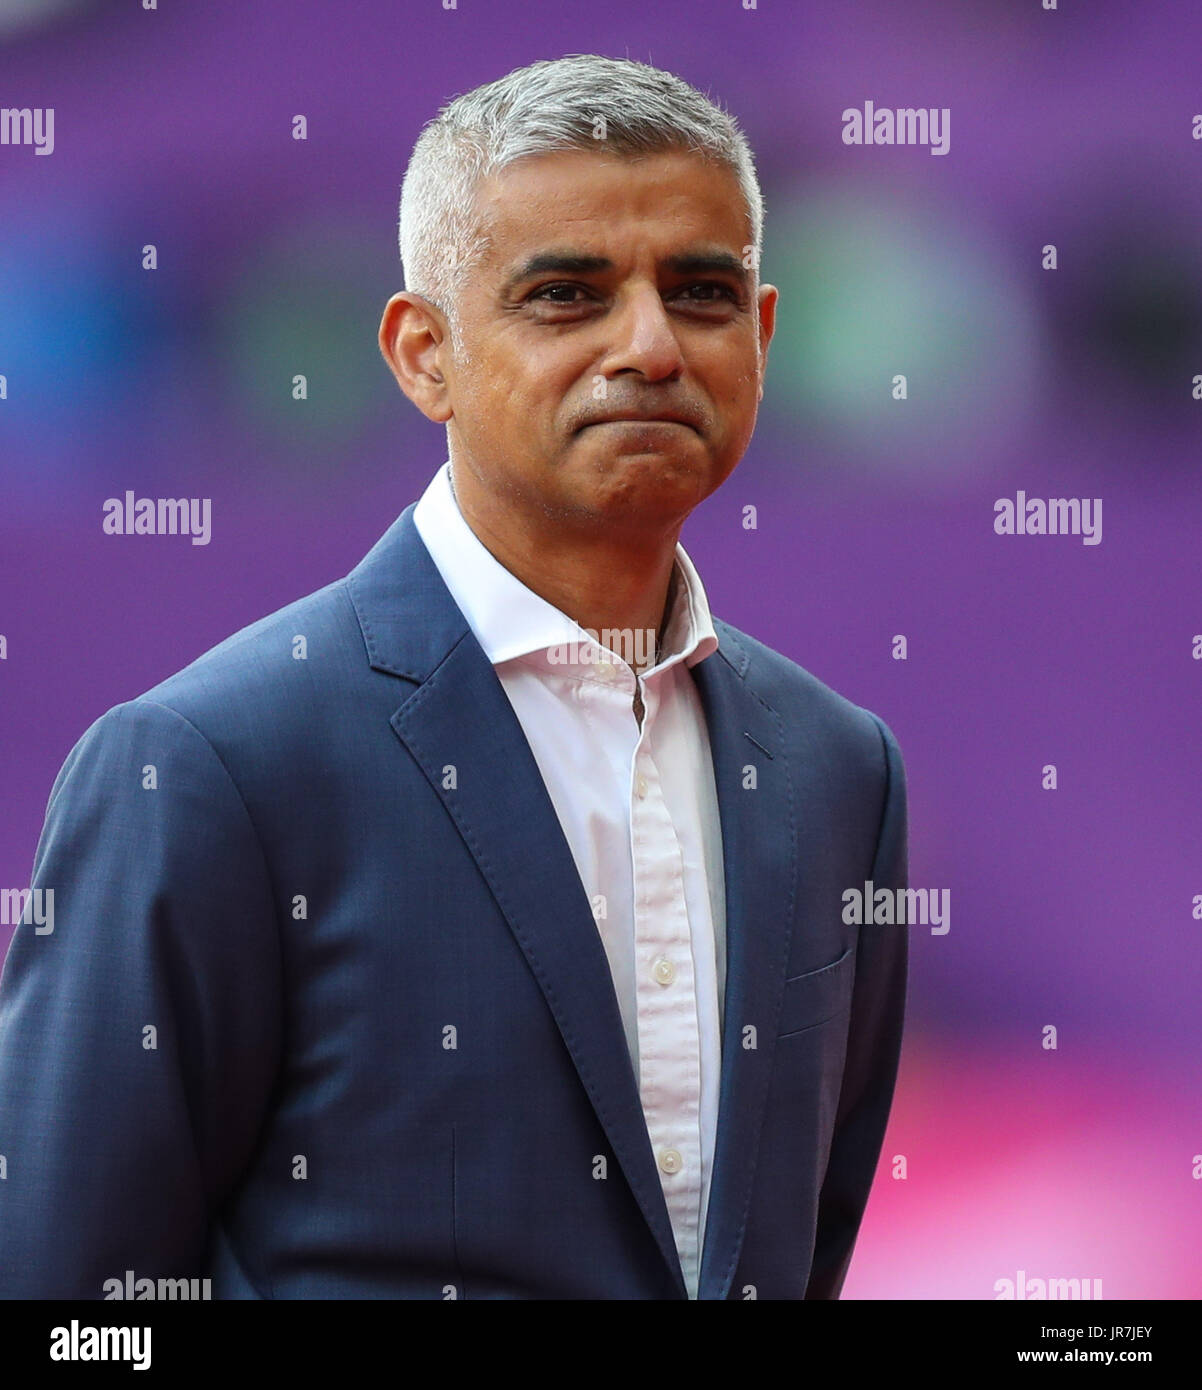 London, UK. 04th Aug, 2017. London, 2017-August-04. Mayor of London Sadiq Khan at the opening ceremony of the IAAF World Championships London 2017. Credit: Paul Davey/Alamy Live News - Stock Image